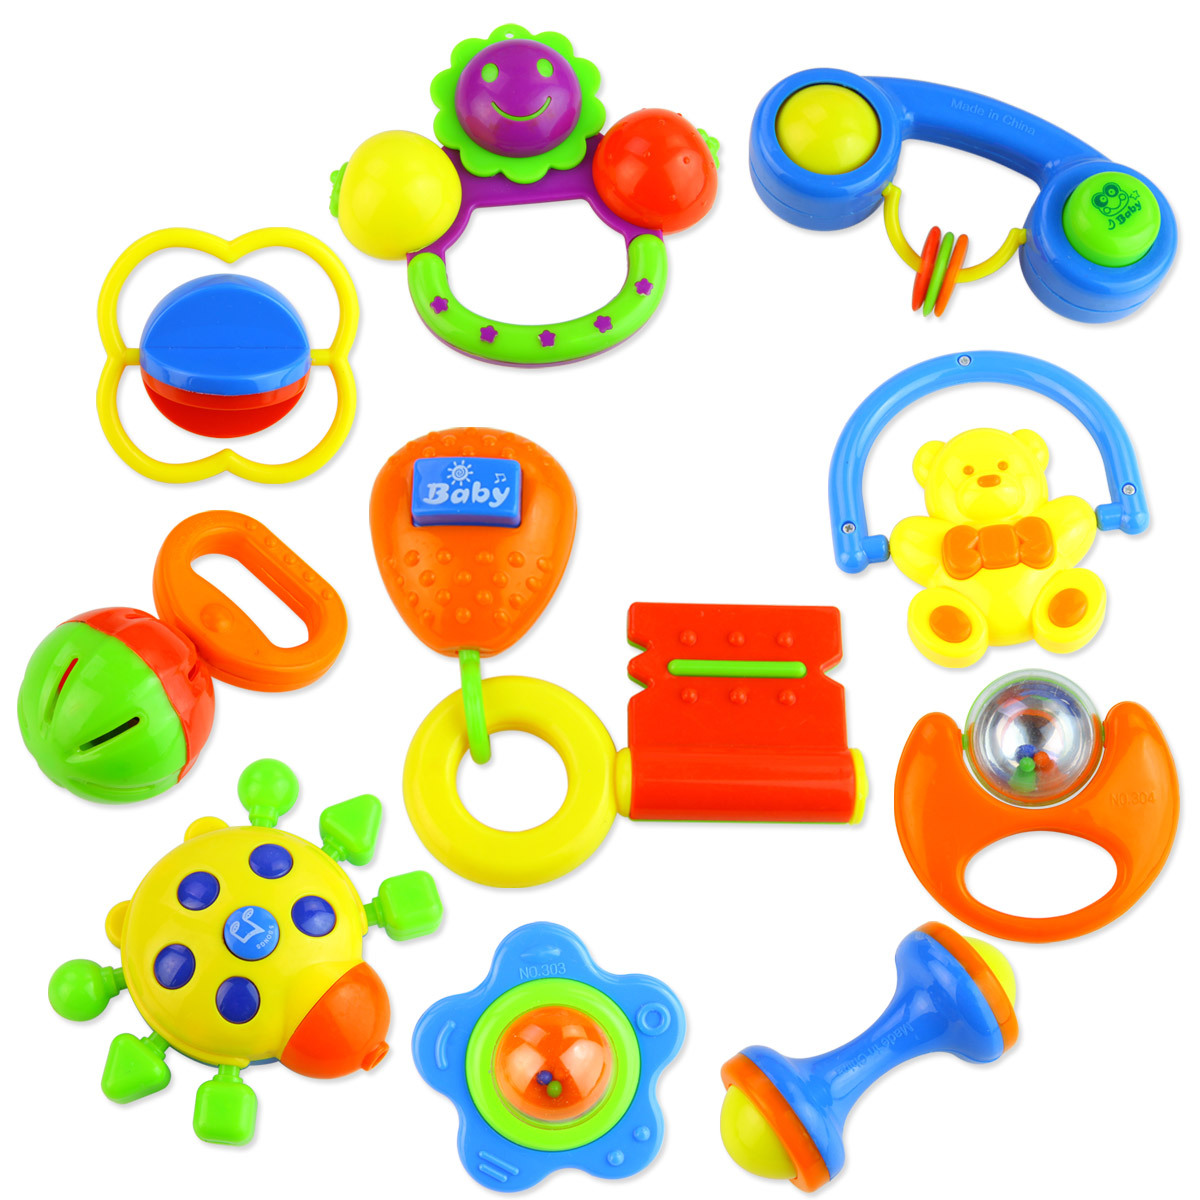 Baby Toy Images - ClipArt Best (1200 x 1200 Pixel)